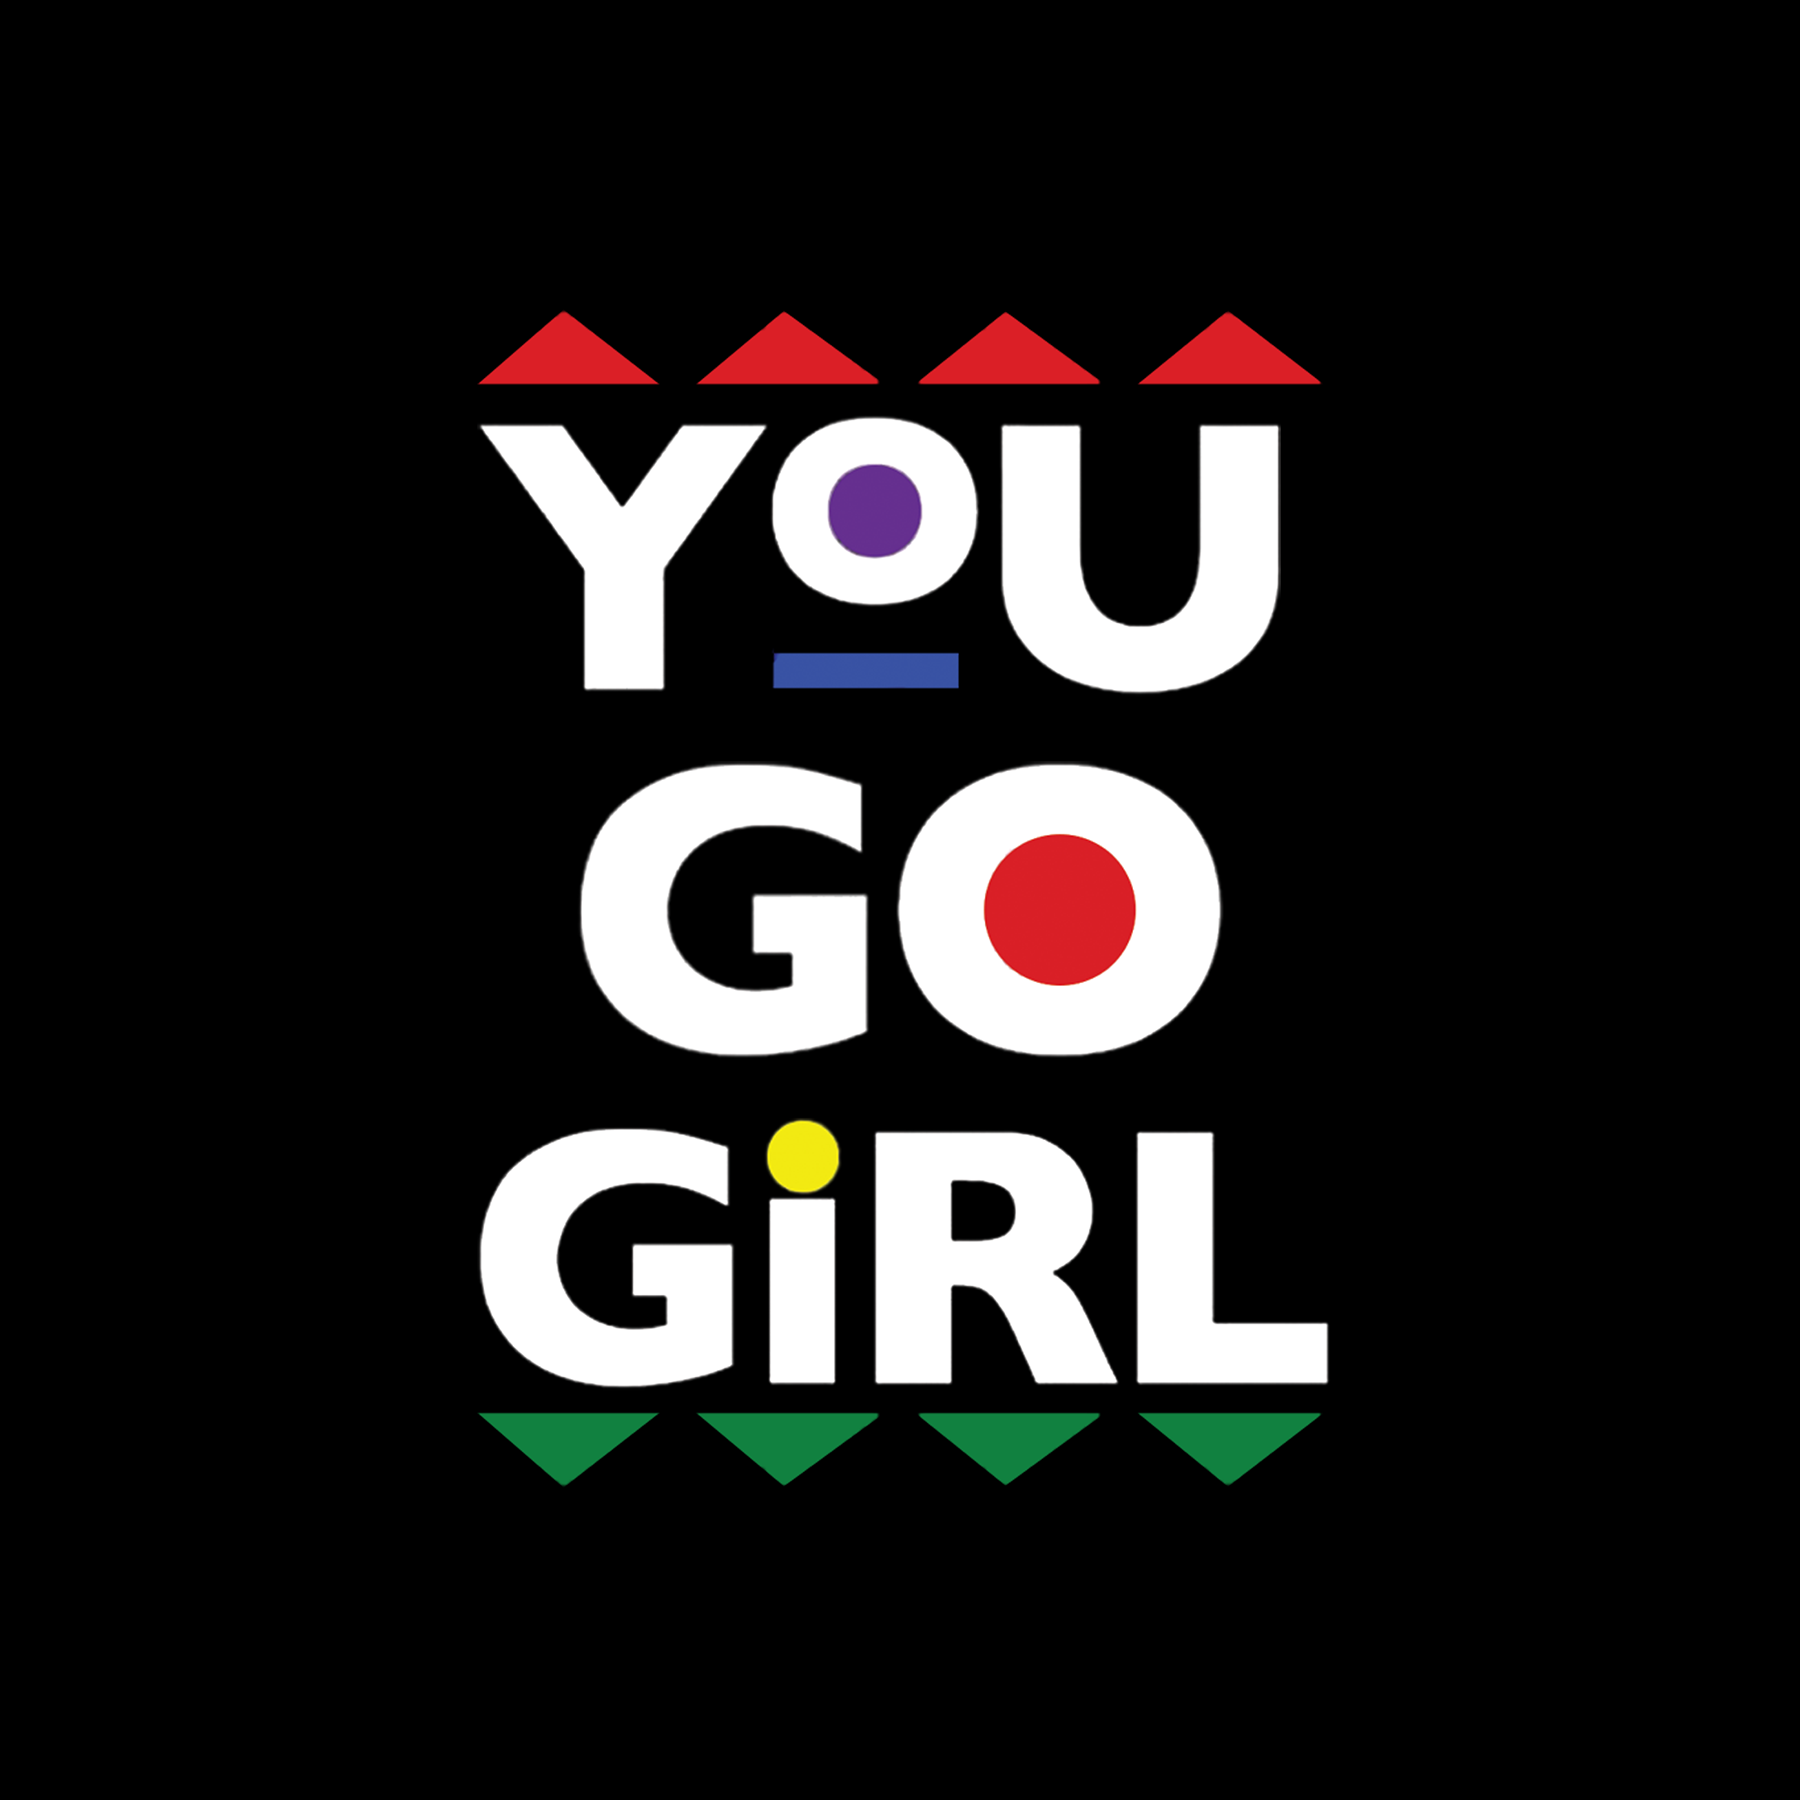 You-Go-Girl-12 29 18.png